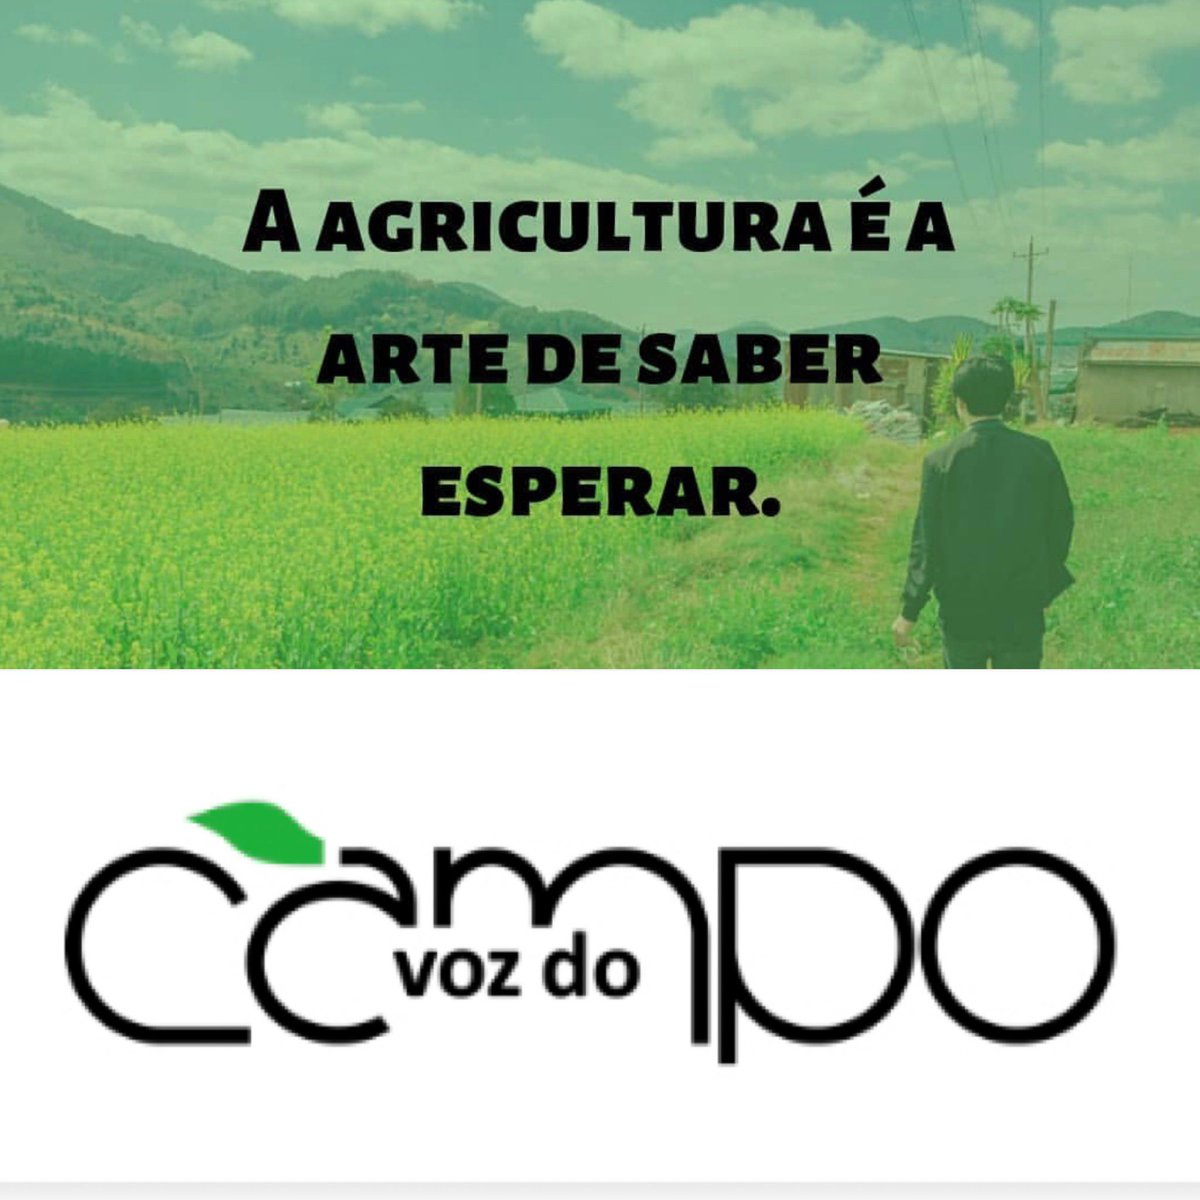 Revista Vozdocampo On Twitter